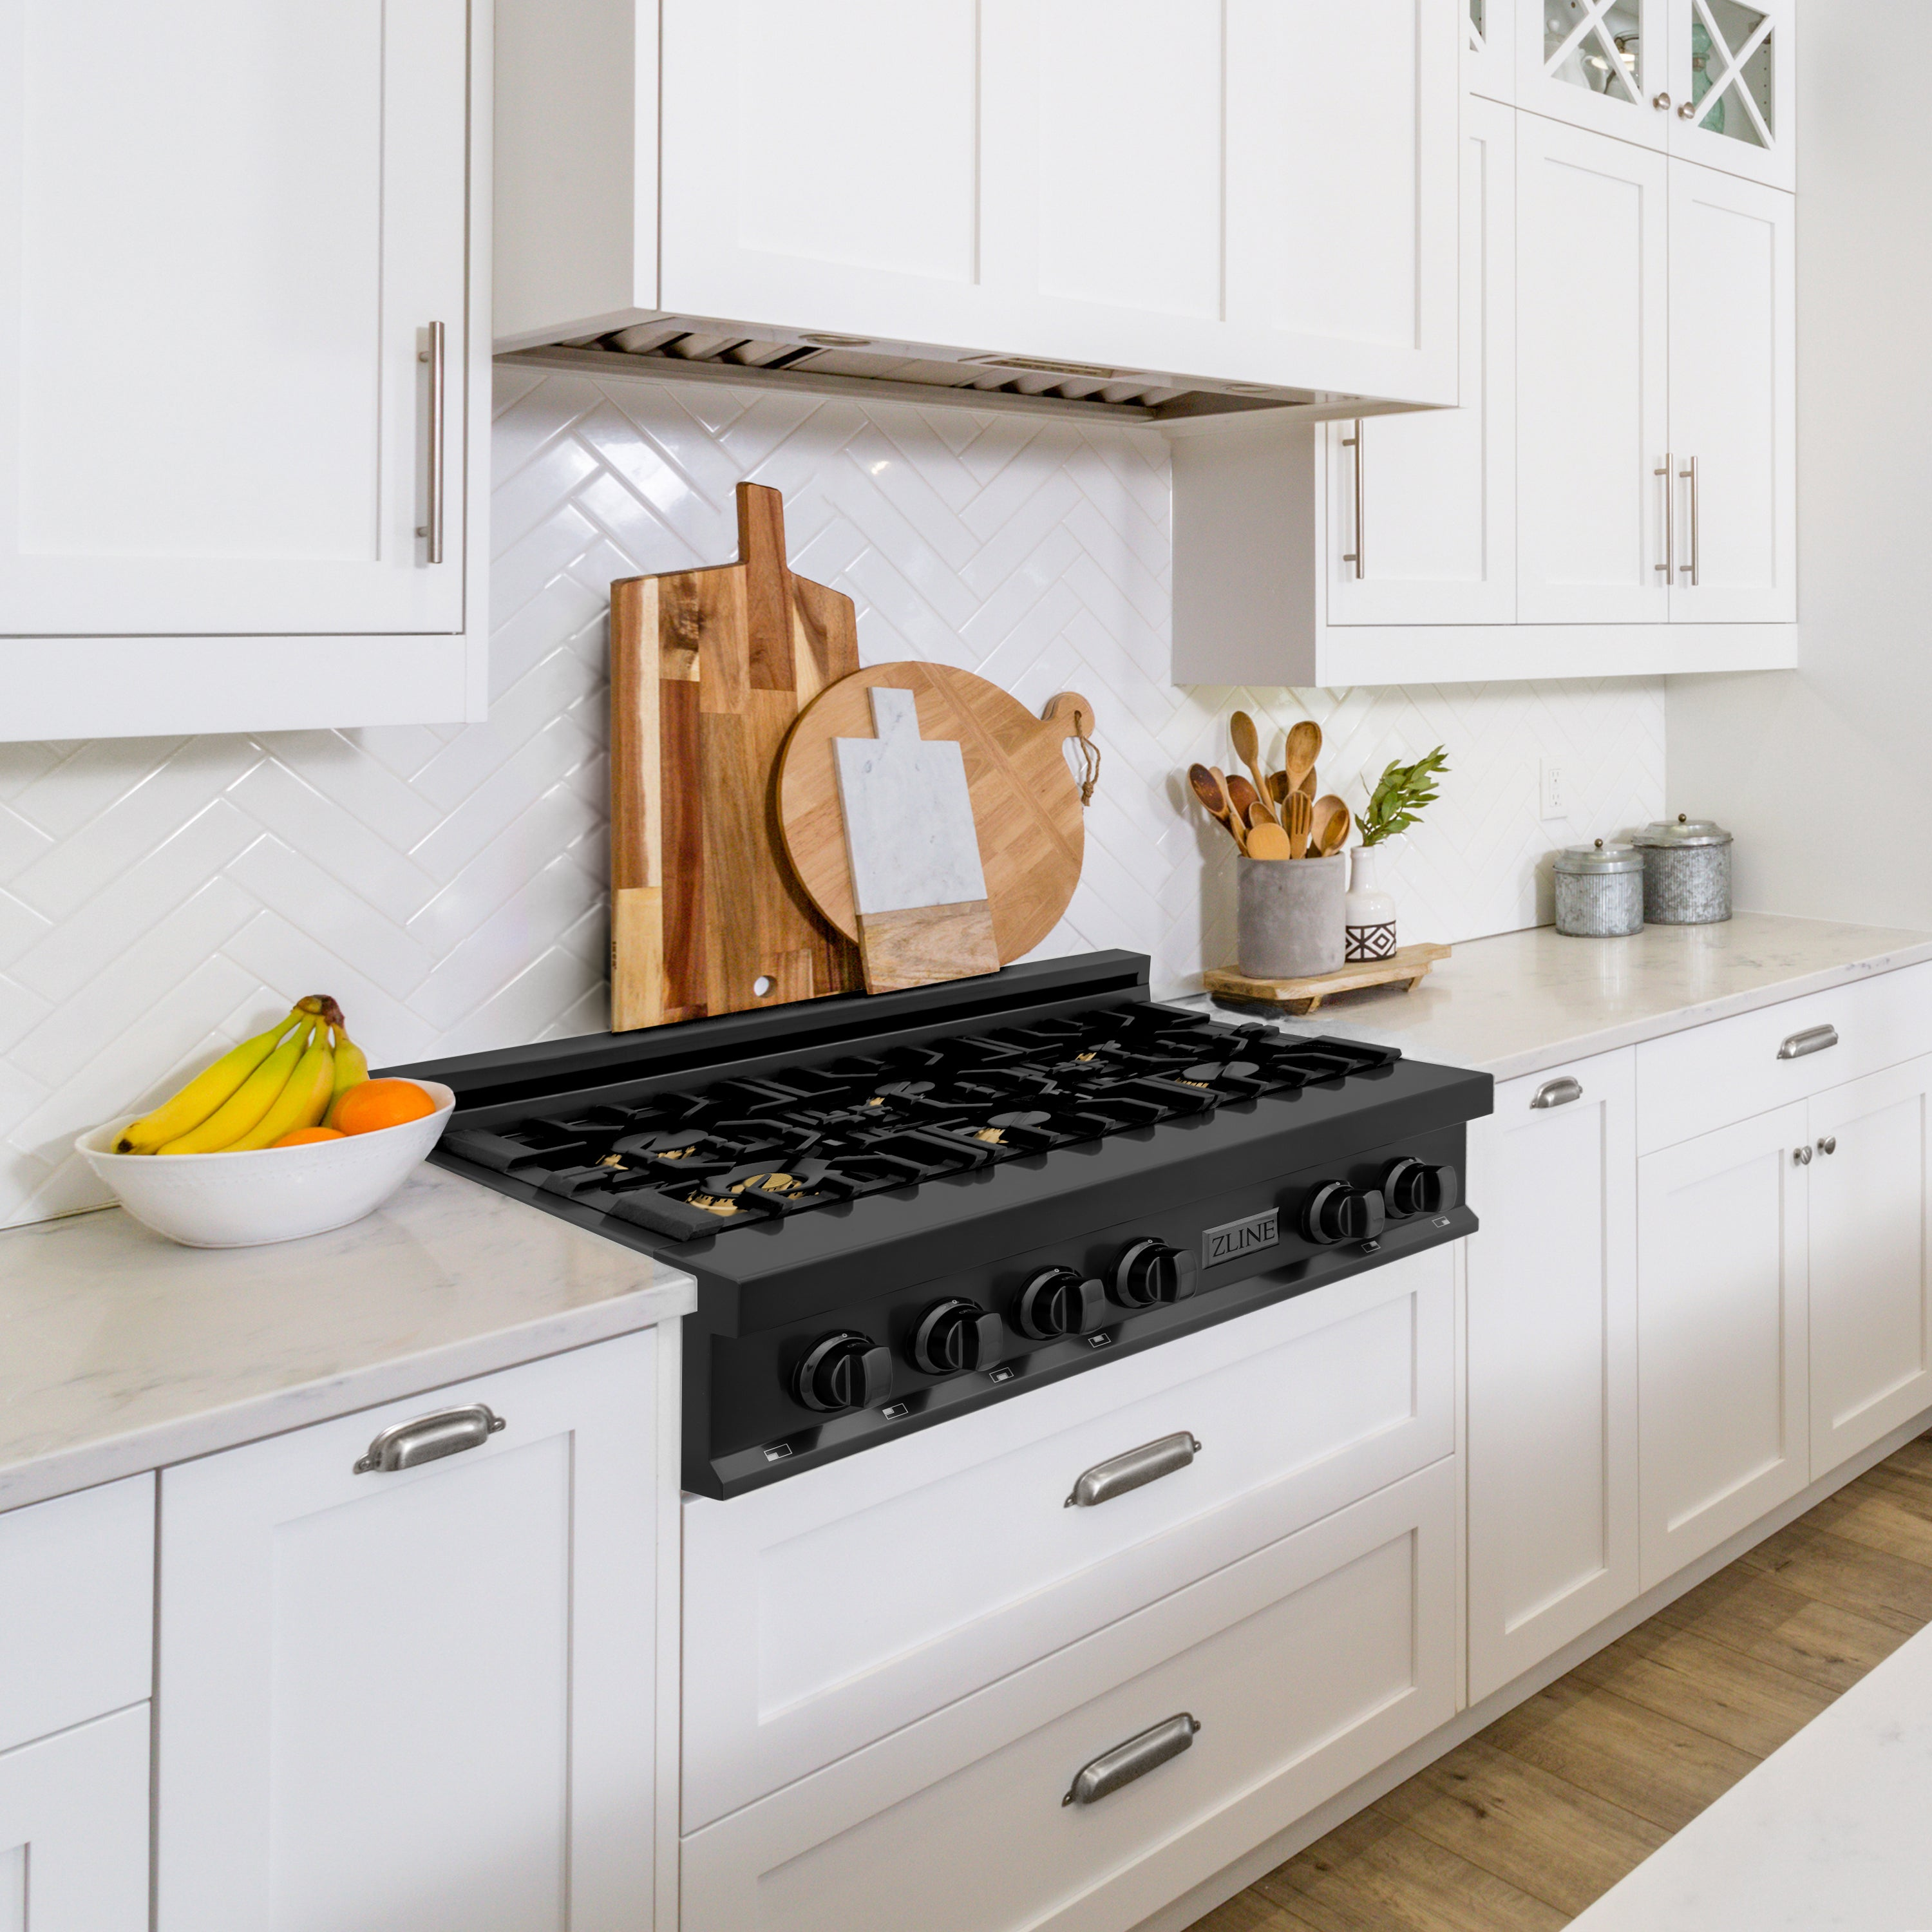 Therangehoodstore.com, ZLINE 30 in. Porcelain Rangetop in Black Stainless with 4 Gas Burners (RTB), RTB-30,